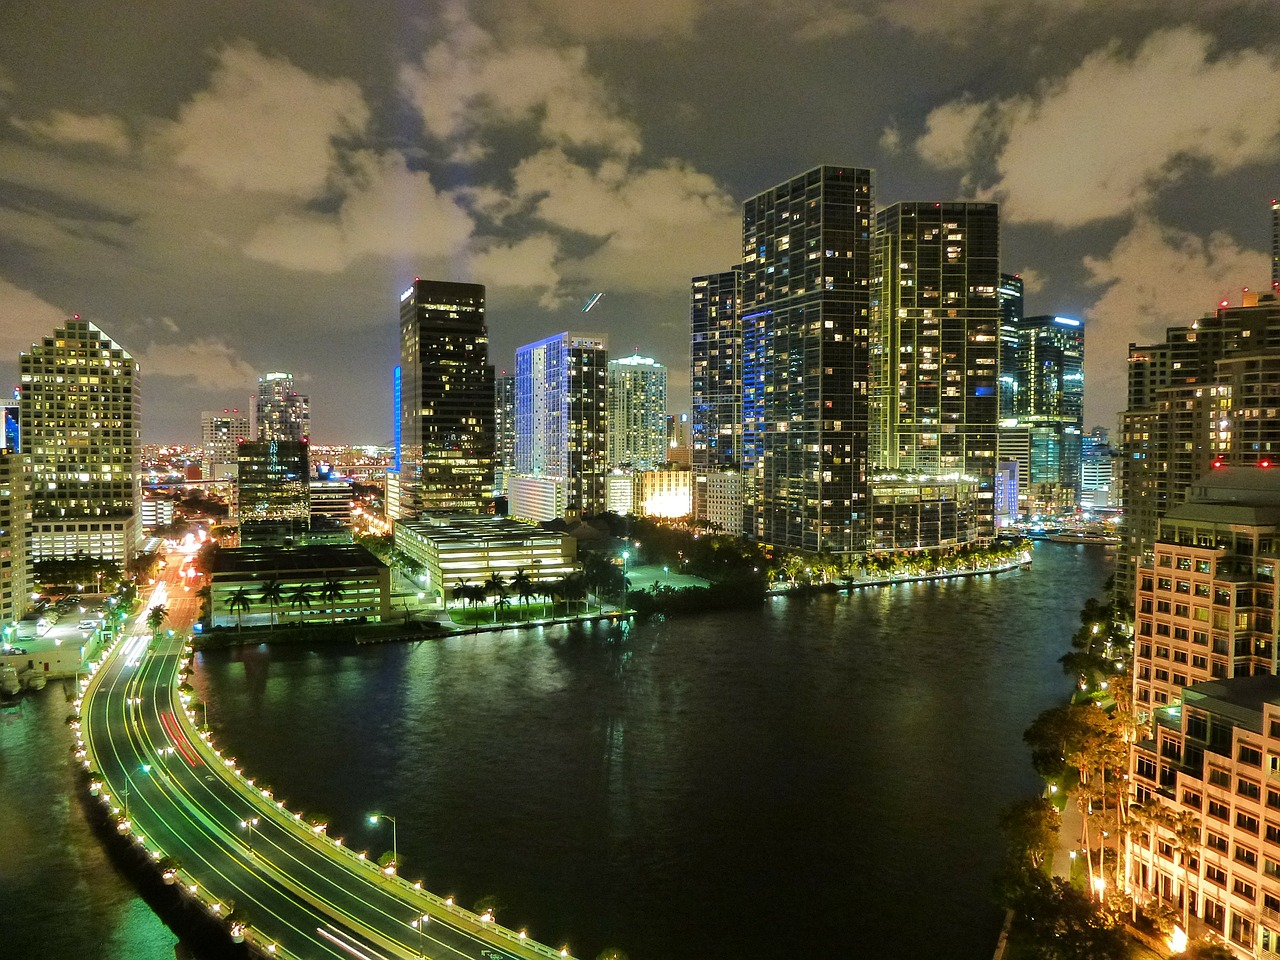 Miami by night, showing sea levels very close to roads and buildings